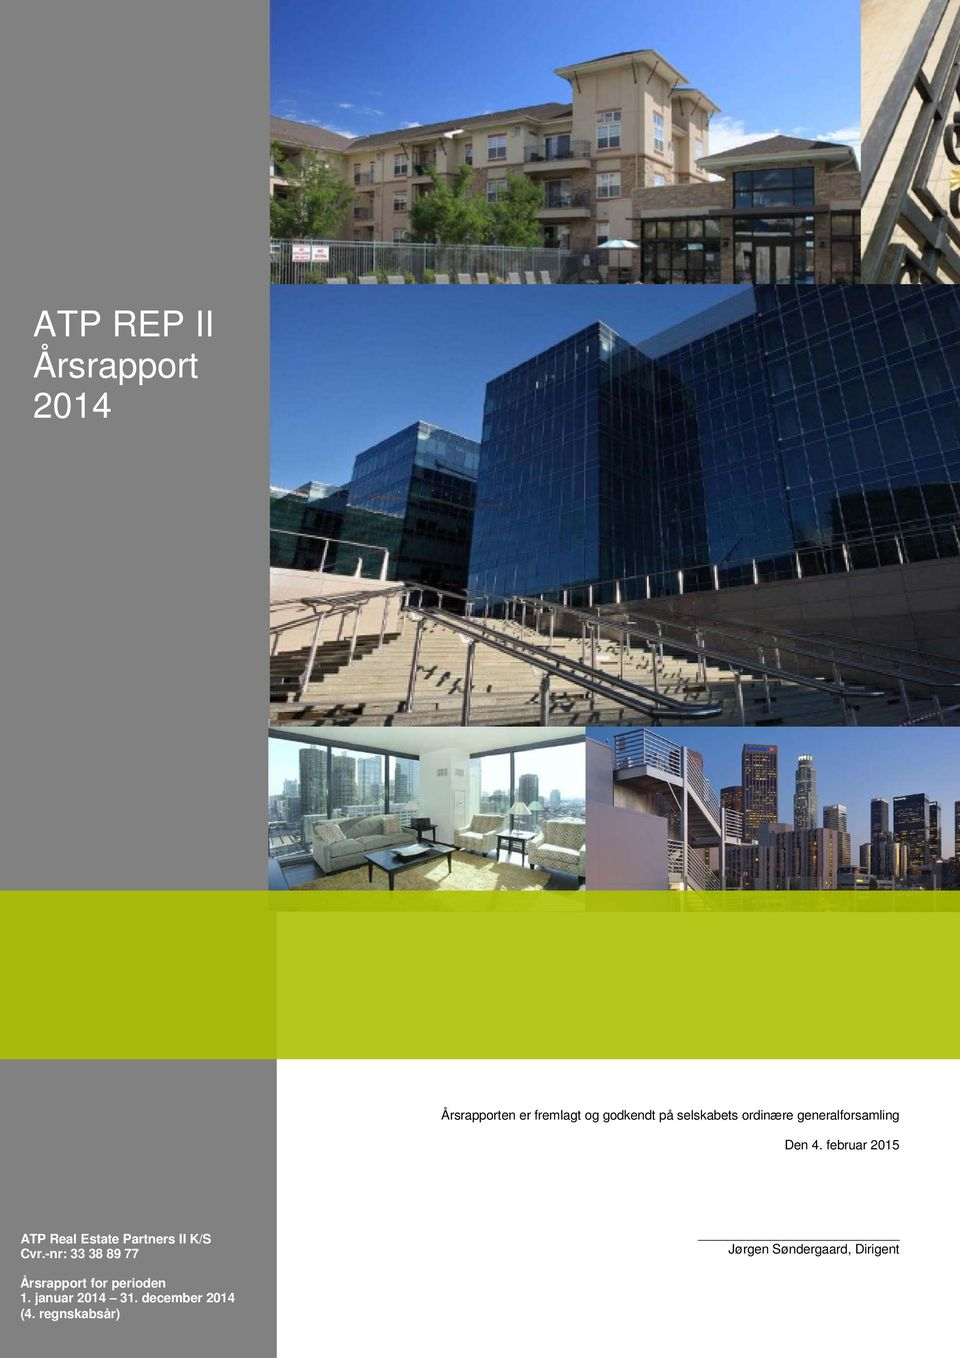 februar 2015 ATP Real Estate Partners II K/S Cvr.